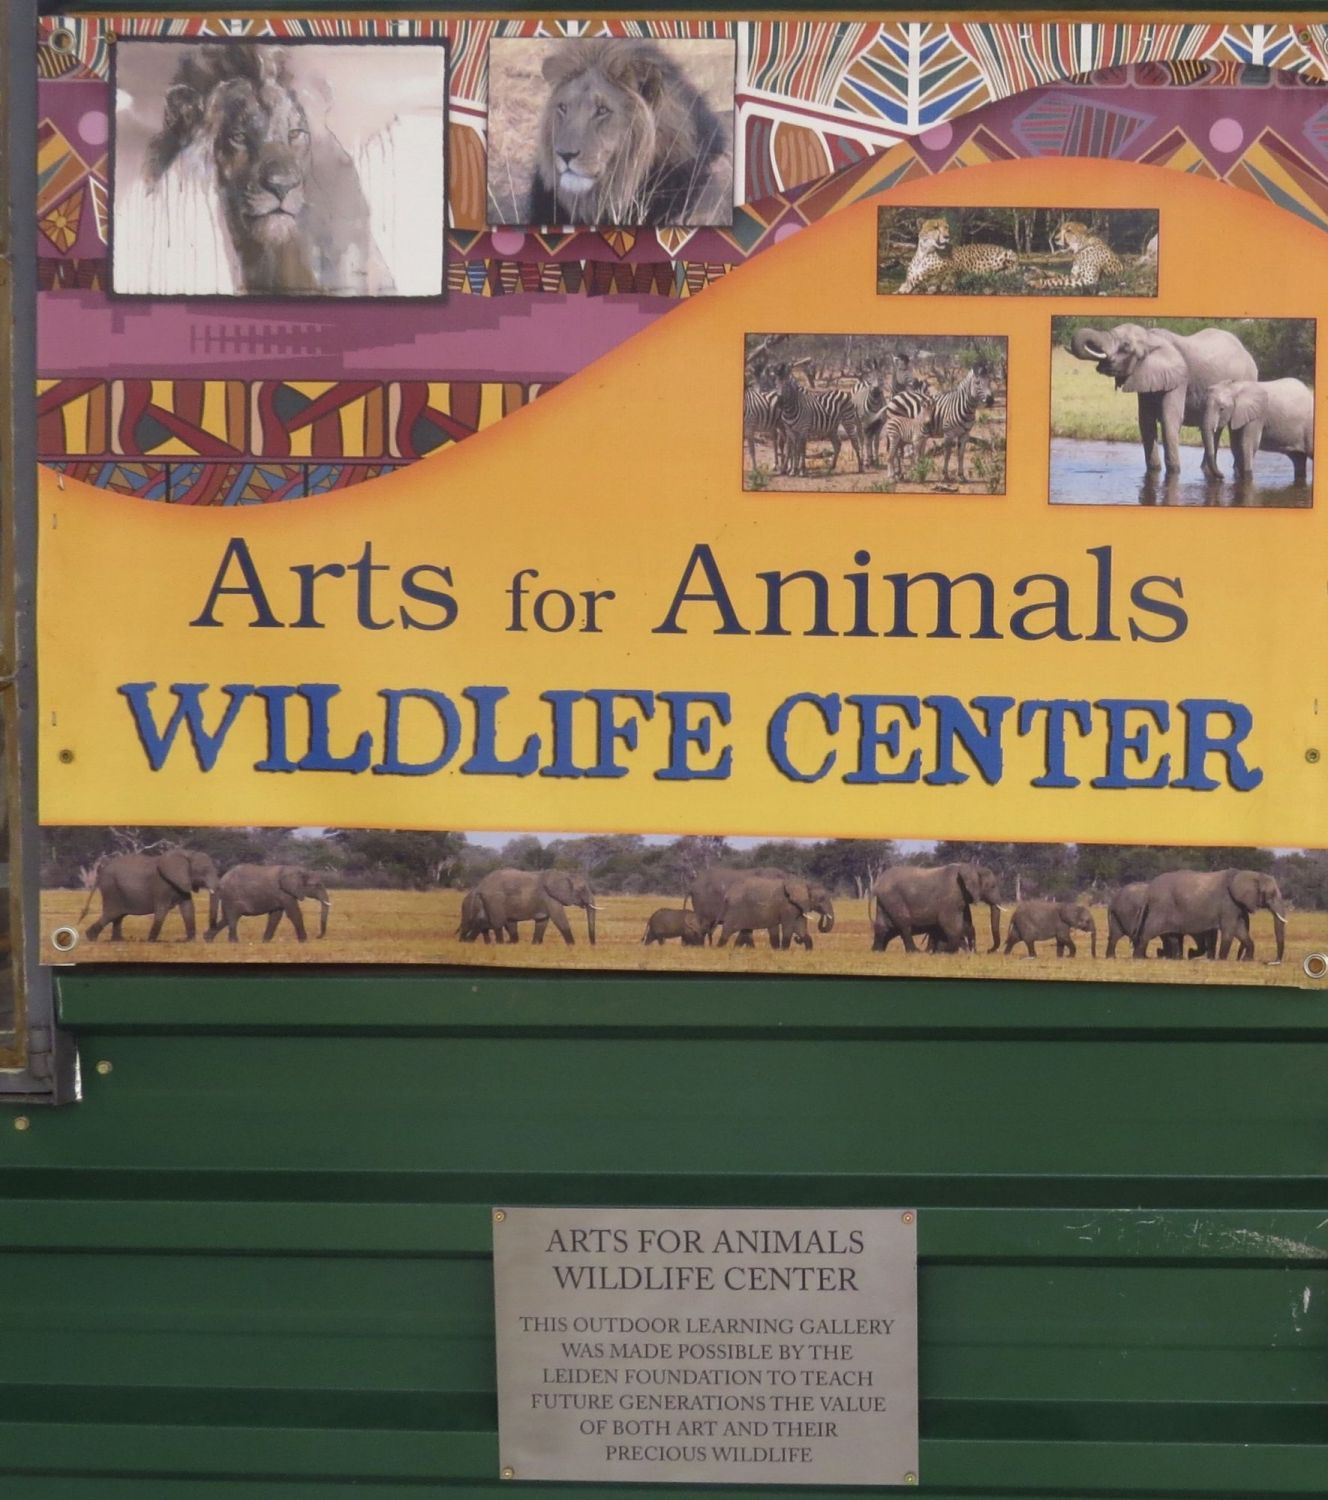 Our wildlife Center works with hundreds of children every year